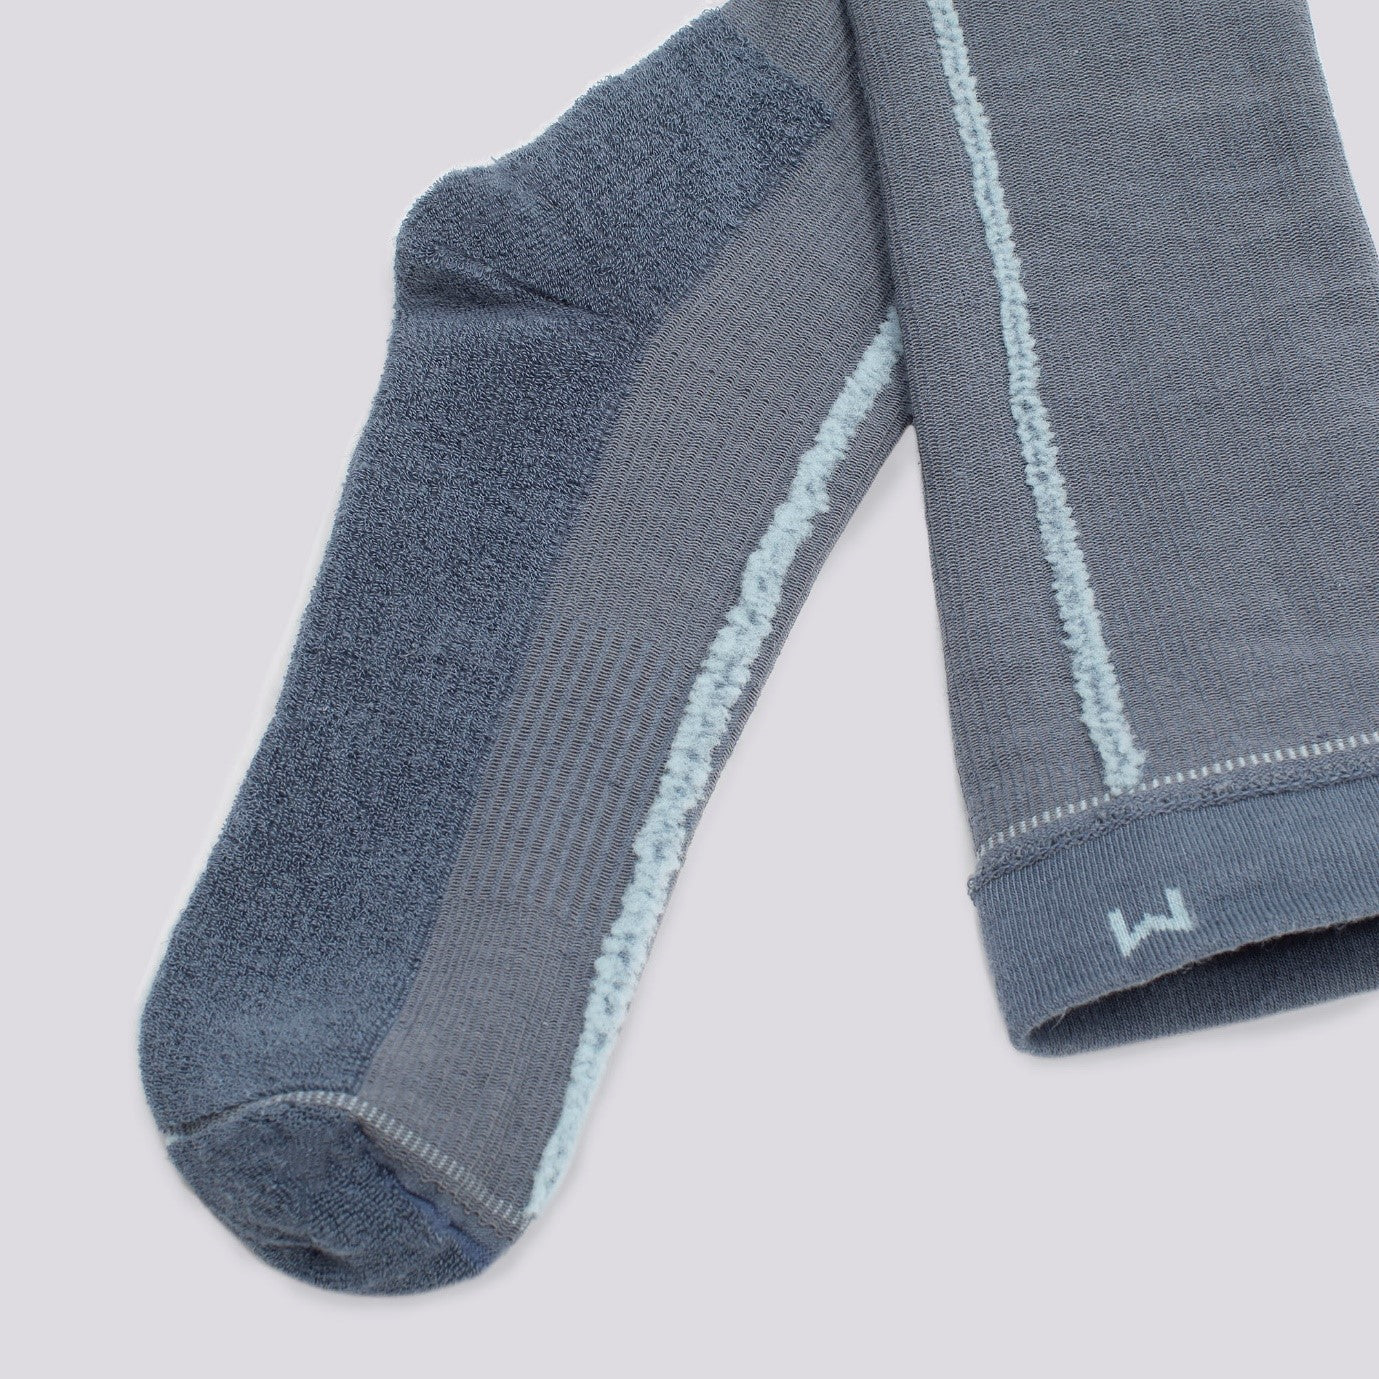 Why We Chose Hemp for Our Compression Socks?